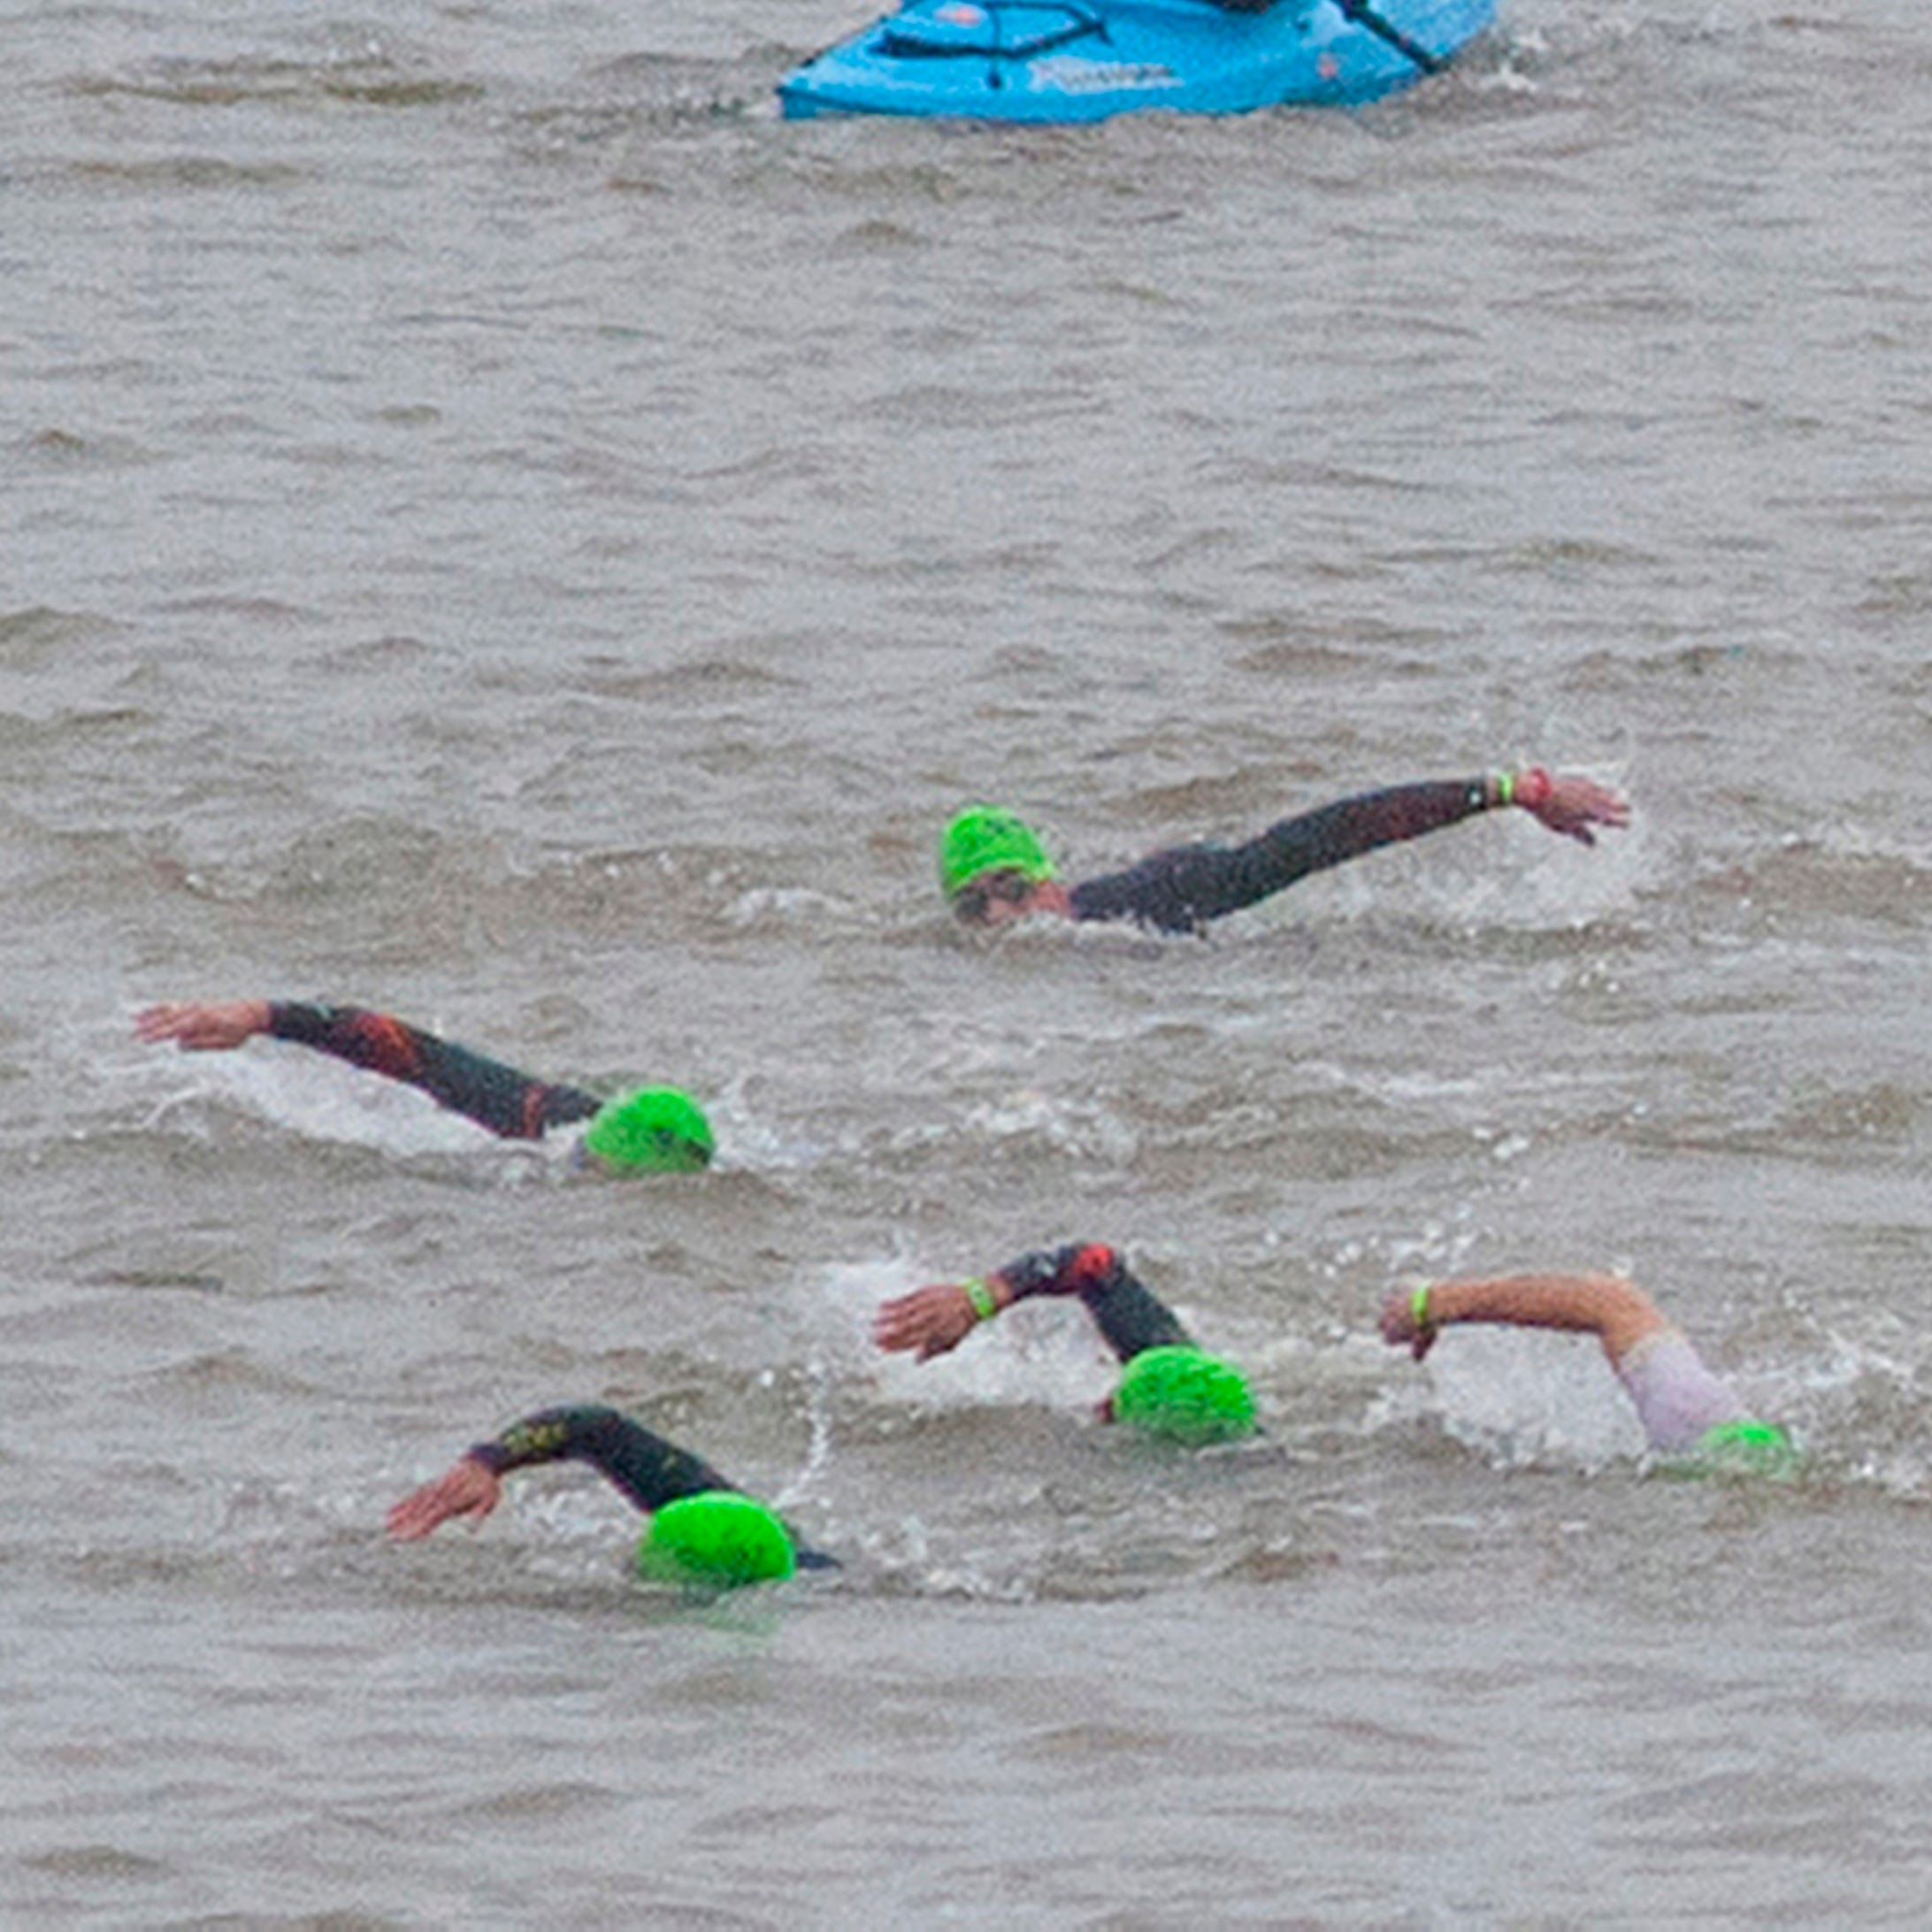 Leiferman and Spieldenner win championships at 2018 Ironman Louisville